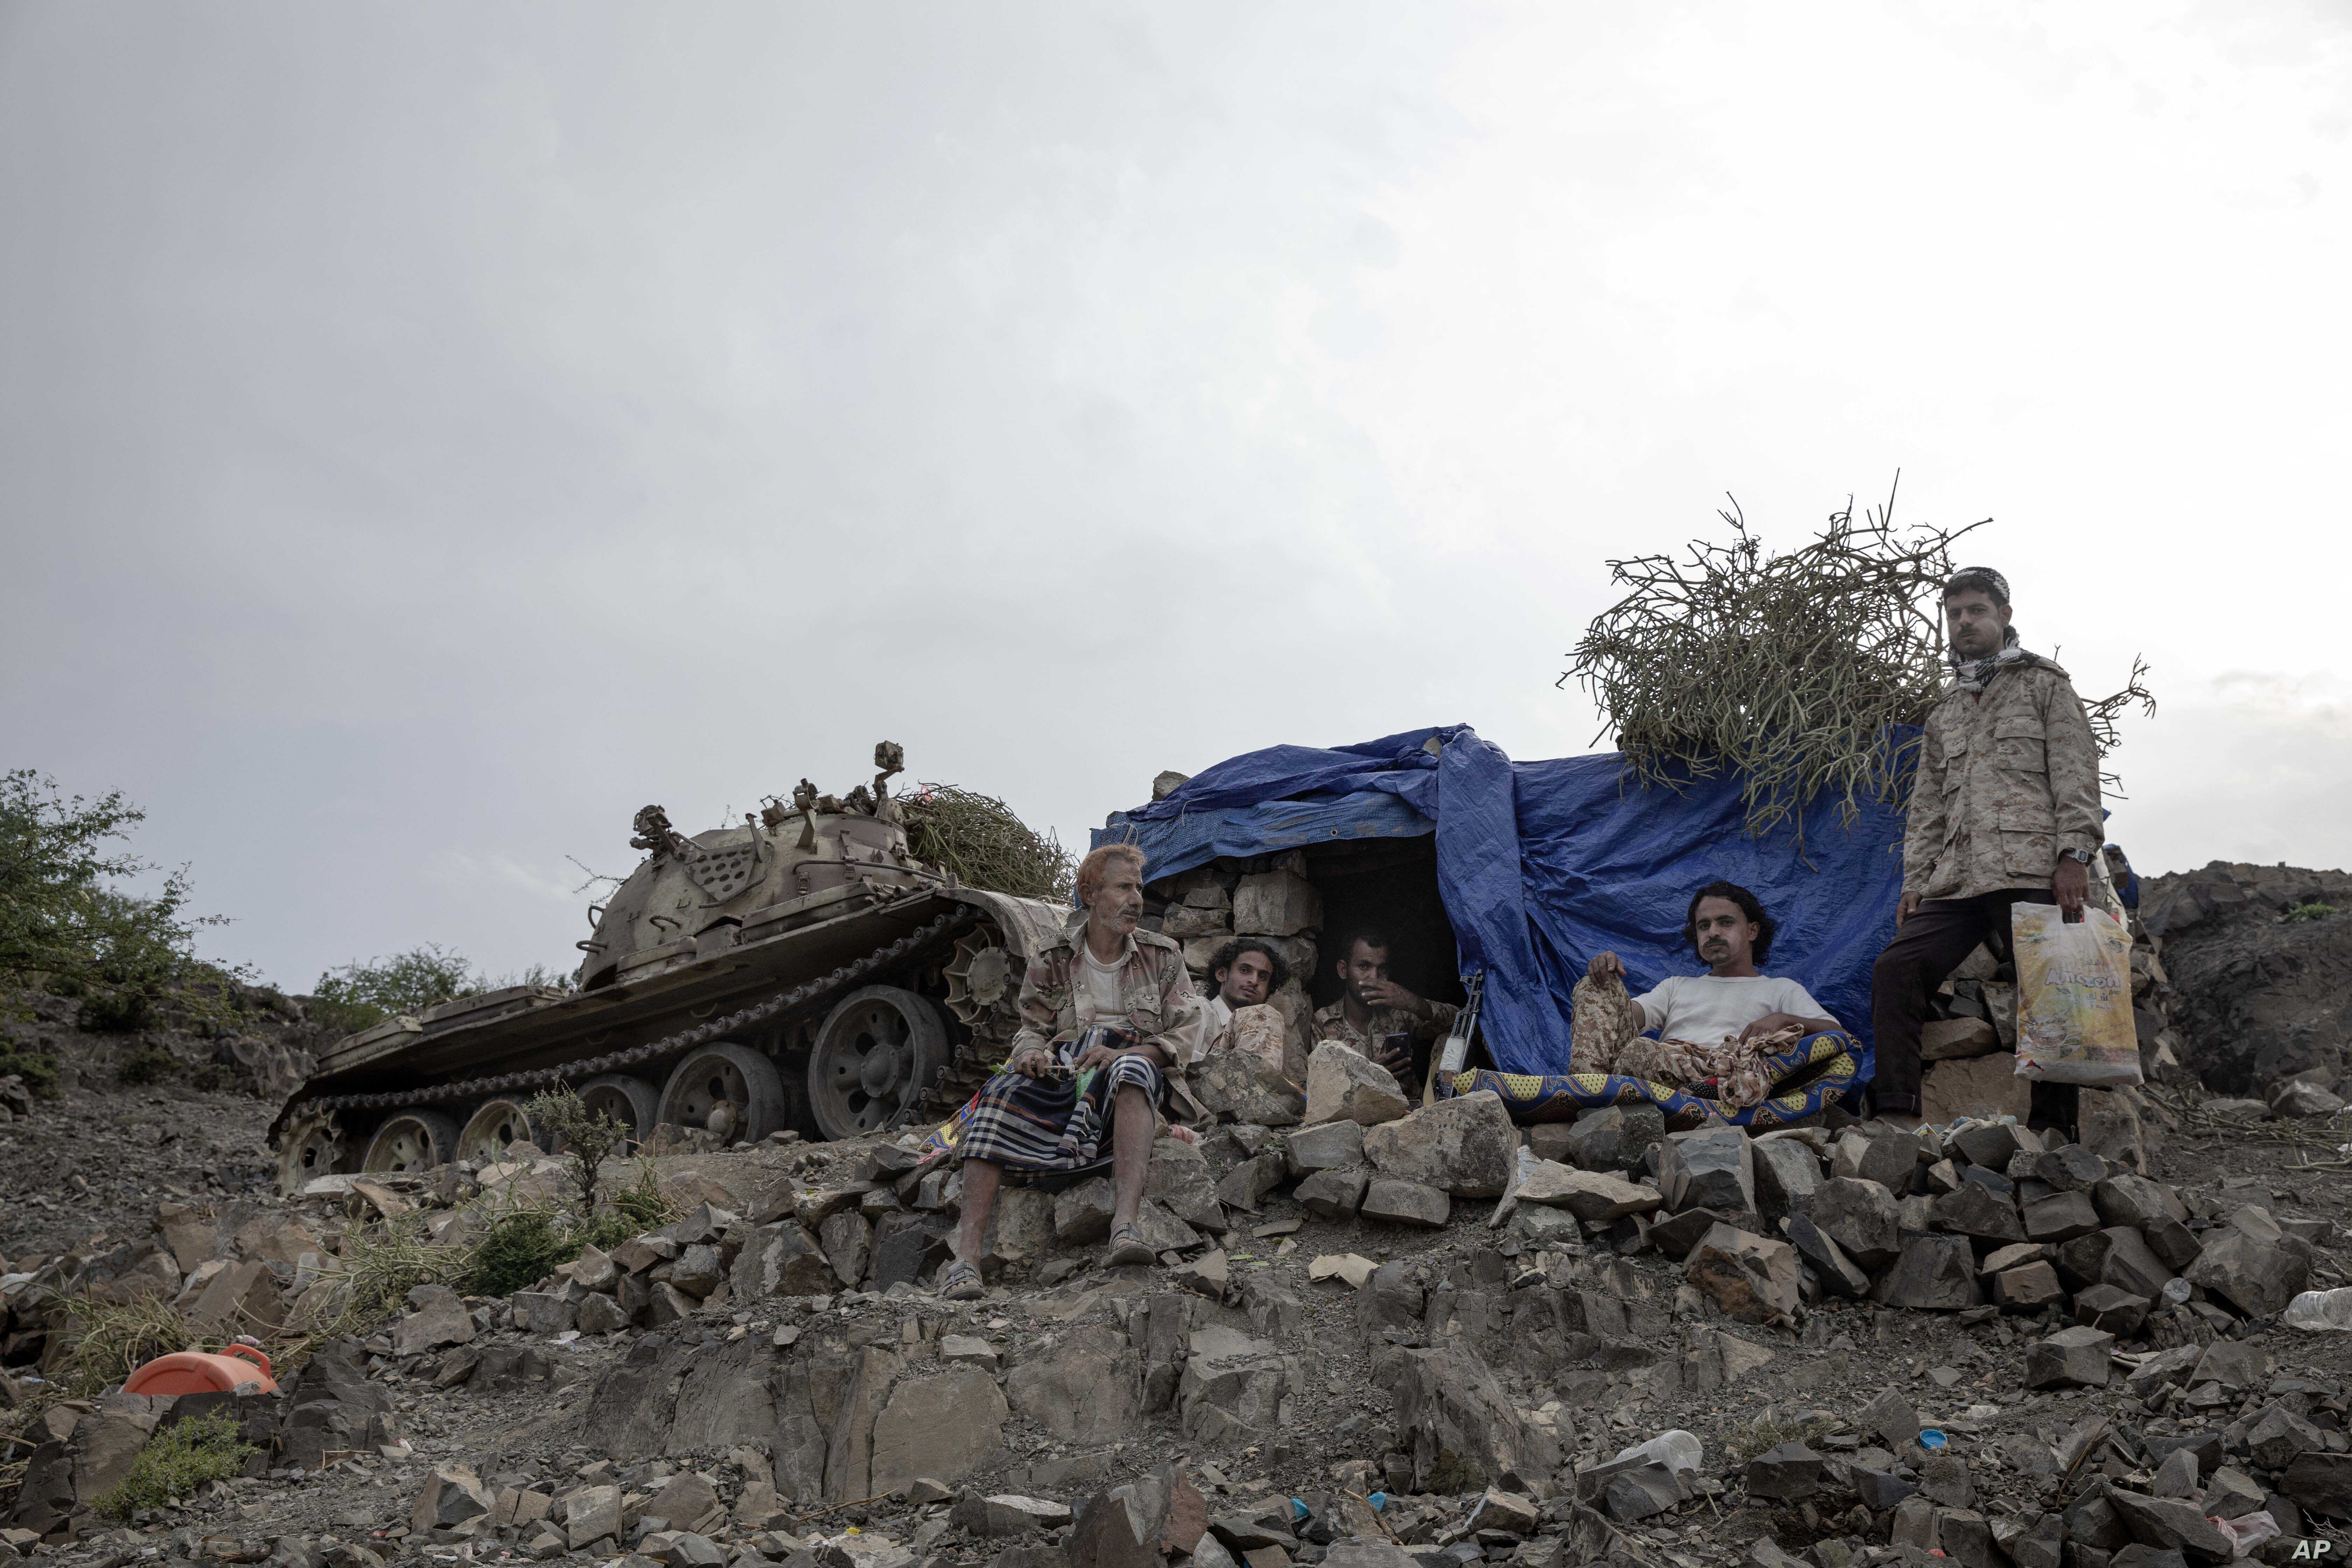 Fighters from a militia known as the Security Belt, that is funded and armed by the United Arab Emirates, take a break, Aug. 5, 2019, to chew Qat, a fresh leaf chewed for its stimulating effects, at the Gabhet Hajr frontline with Houthi rebels, in Yemen's Dhale province.